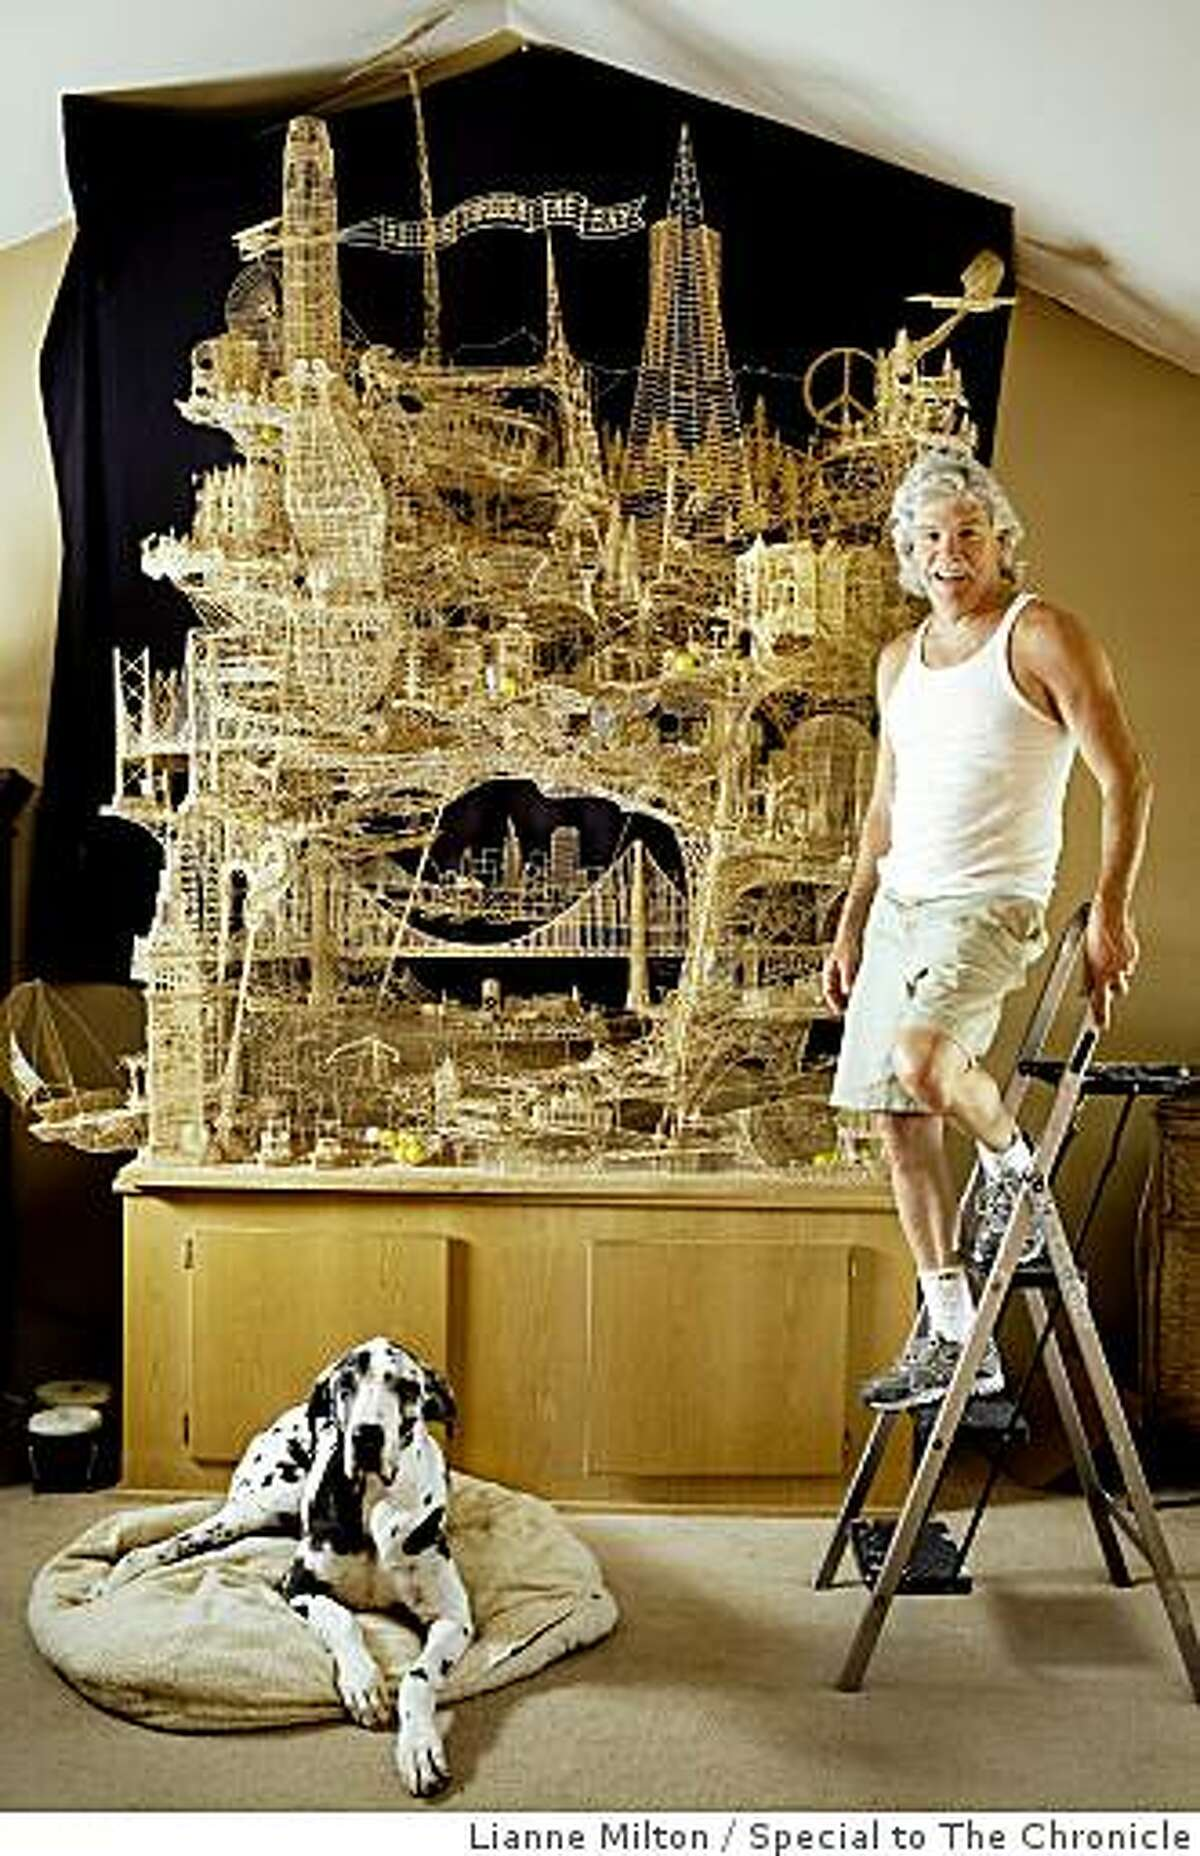 """Scott Weaver, of Rohnert Park, has spent about 3000 hours of the course of 34-years building a sculpture of San Francisco from over 100,000 toothpicks, at his home, in Rohnert Park, CA., on Friday, June 19, 2009. He calls the project, """"Rolling through the Bay,"""" because of tracks for ping-pong balls throughout the nine-foot structure."""